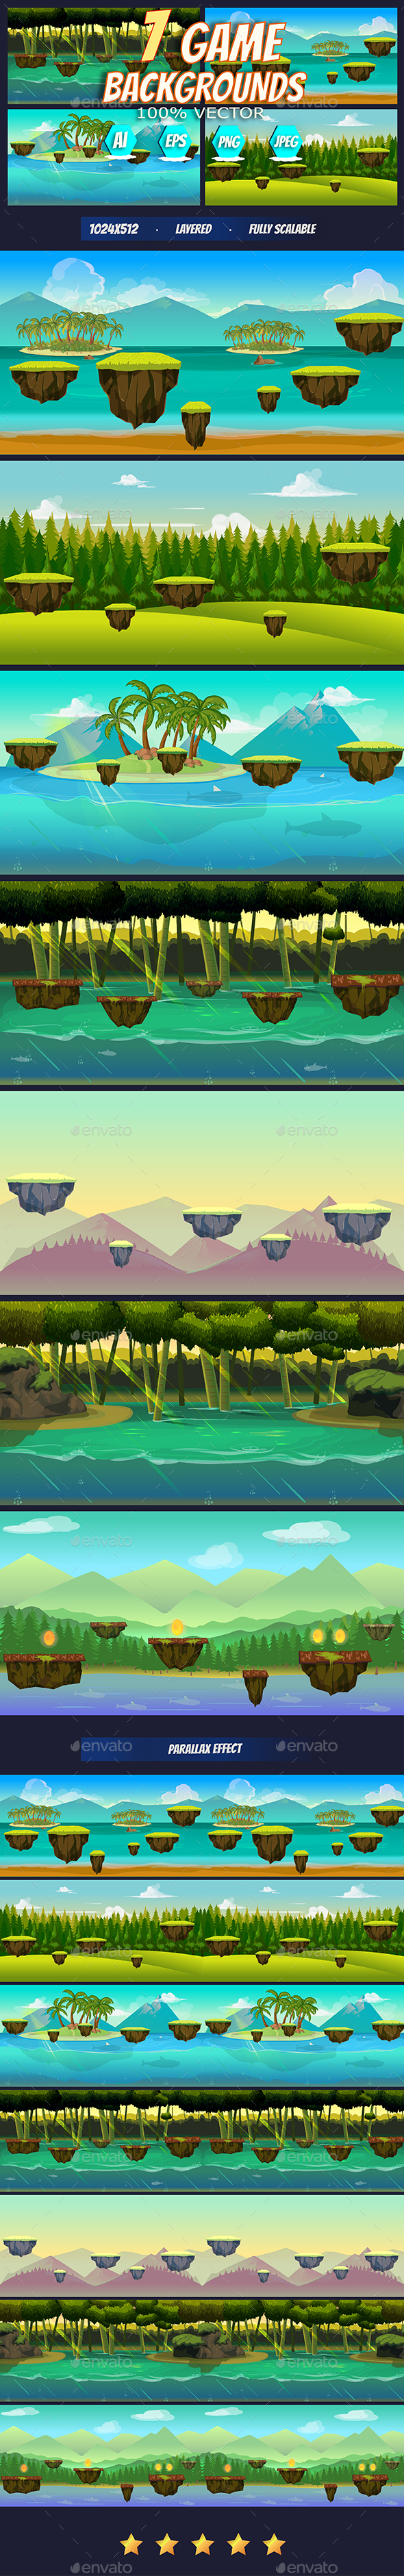 Platformer Game Background 17 (Backgrounds)